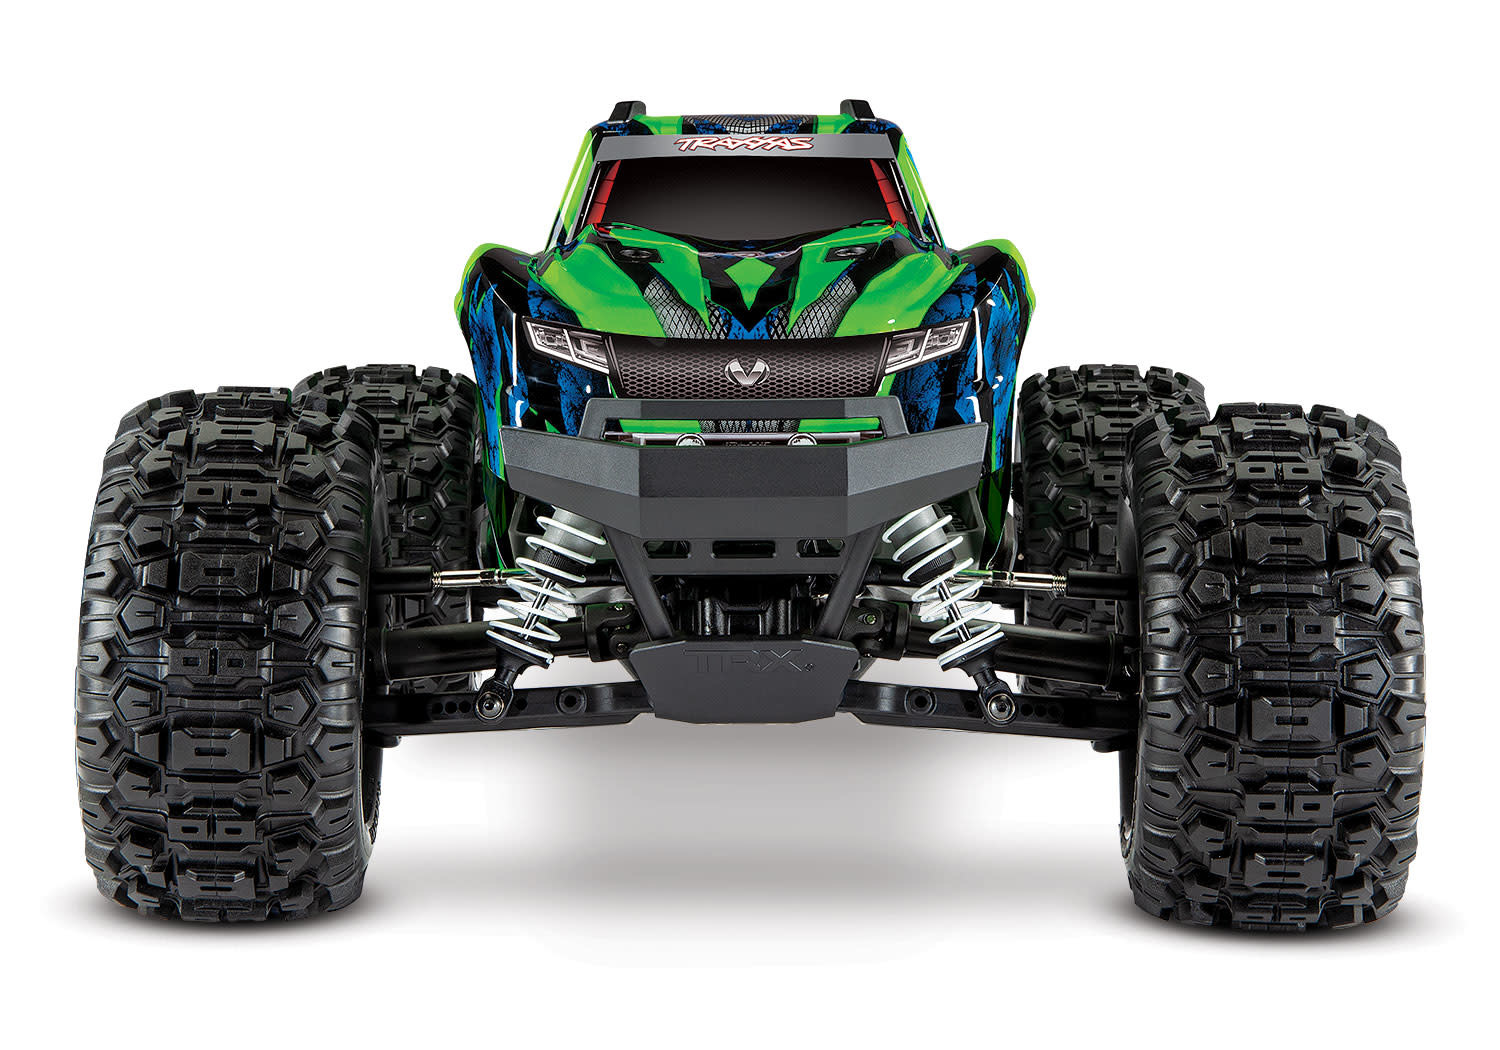 Traxxas Hoss 1/10 Scale 4WD Brushless Electric Monster Truck, VXL-3S, TQi - Green TRX90076-4G-9